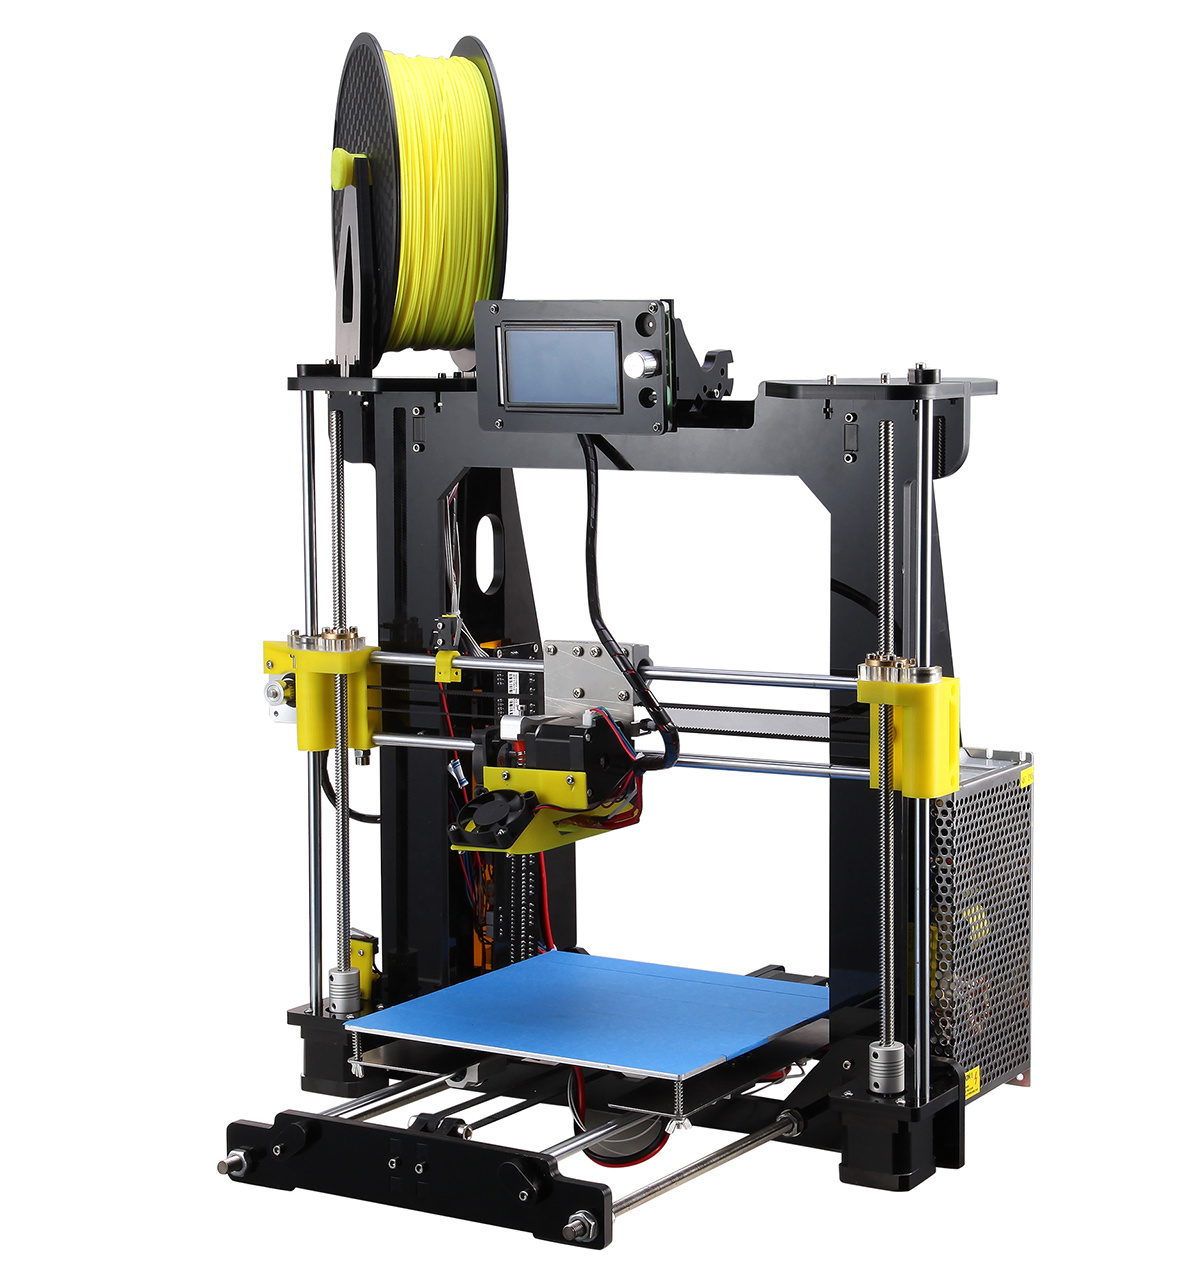 2017 Acrylic Reprap Prusa I3 High Quality DIY 3D Printer